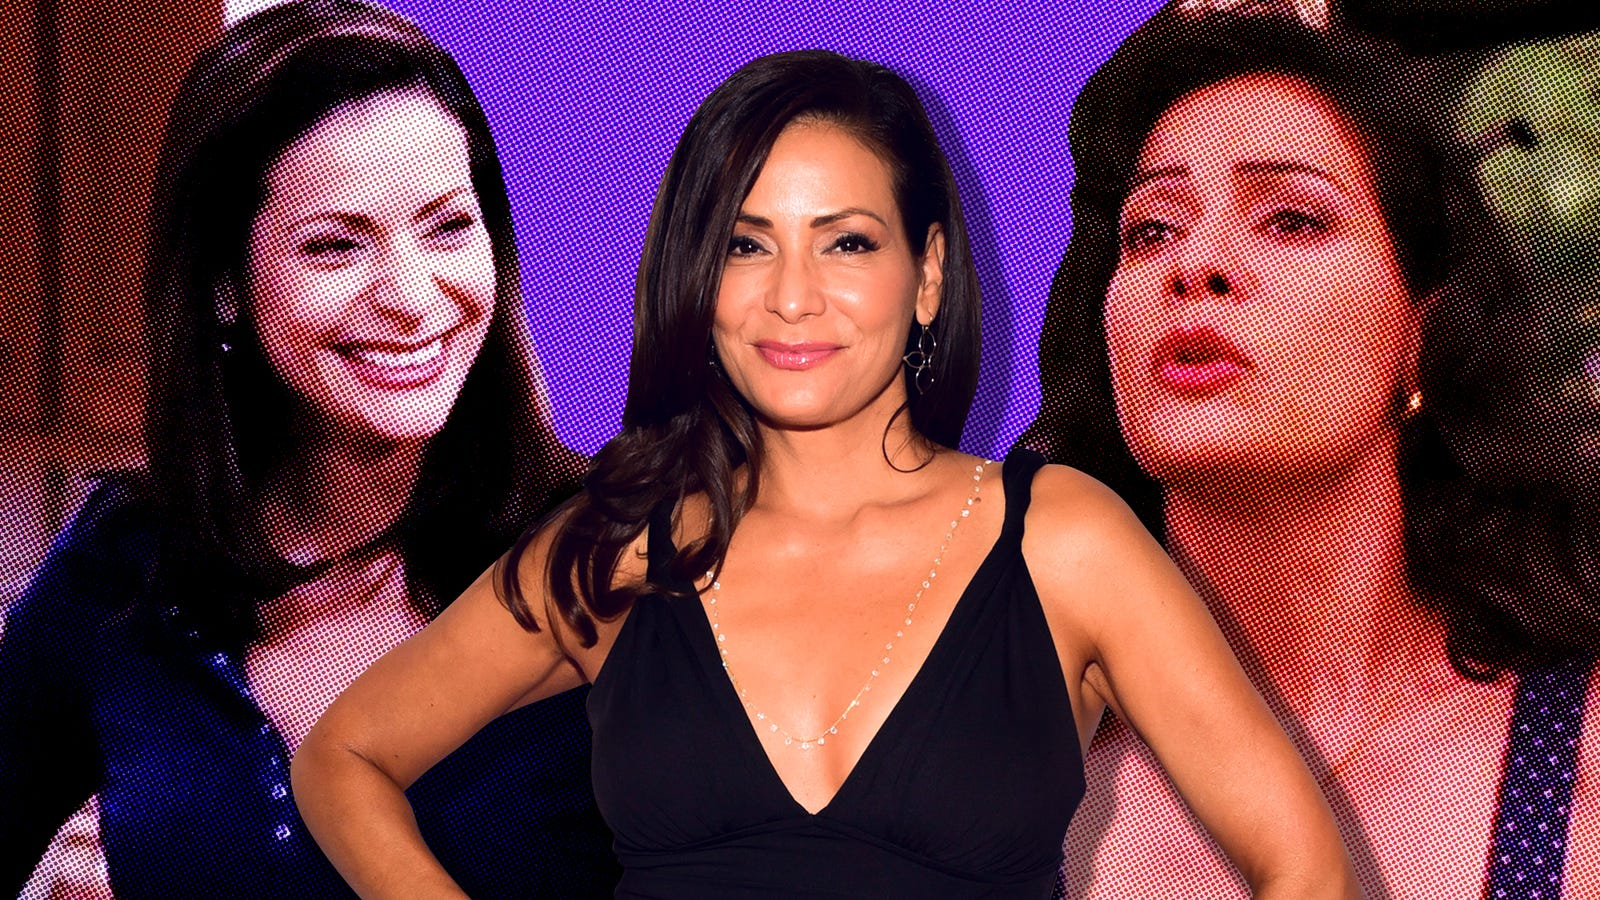 From Selena to Undone, Constance Marie has been the matriarch of many an American Family